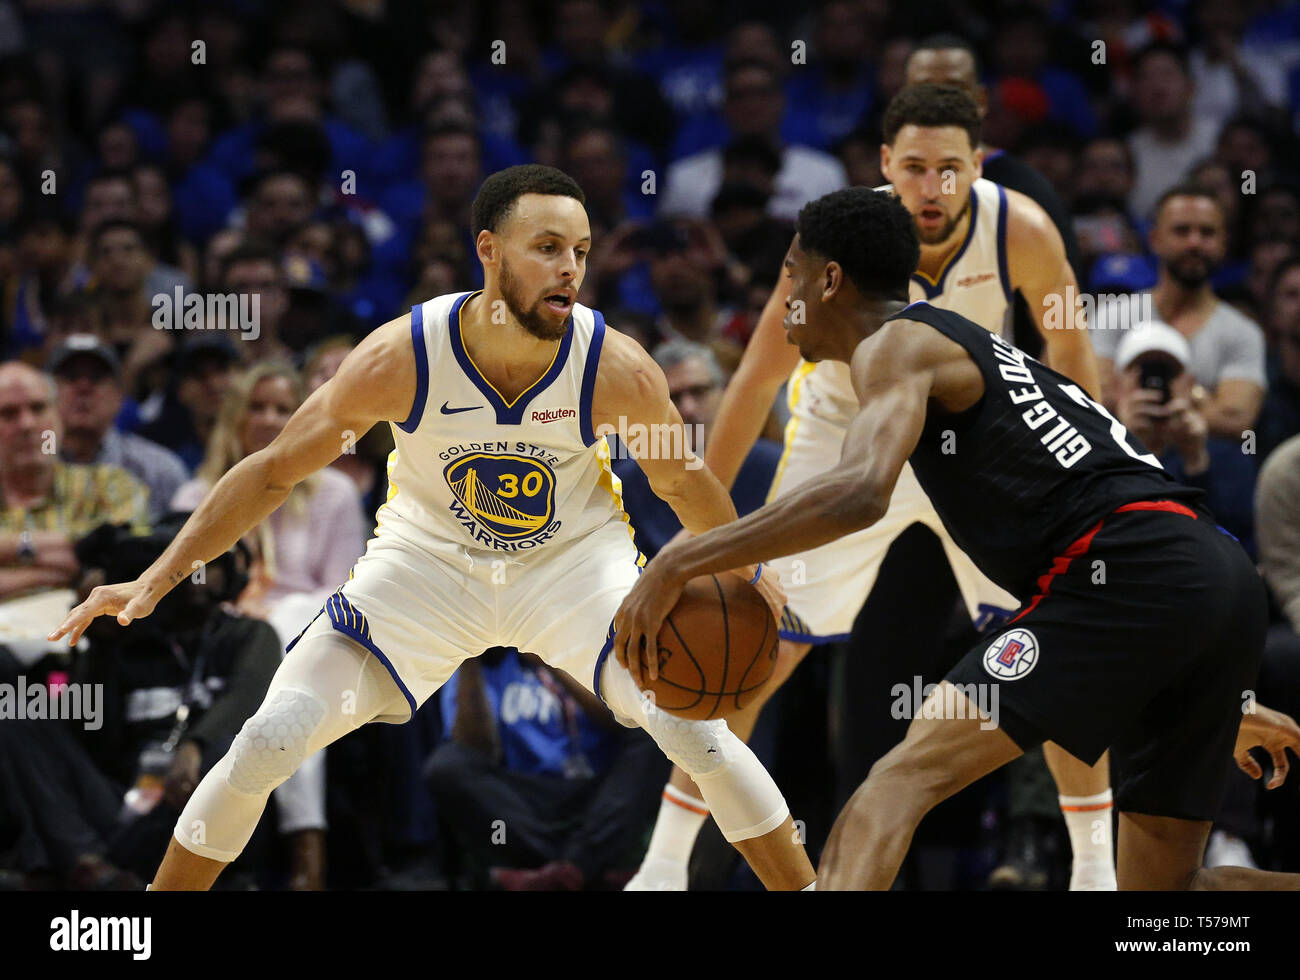 52c278d4b8b Of The Nba Stock Photos   Of The Nba Stock Images - Page 7 - Alamy